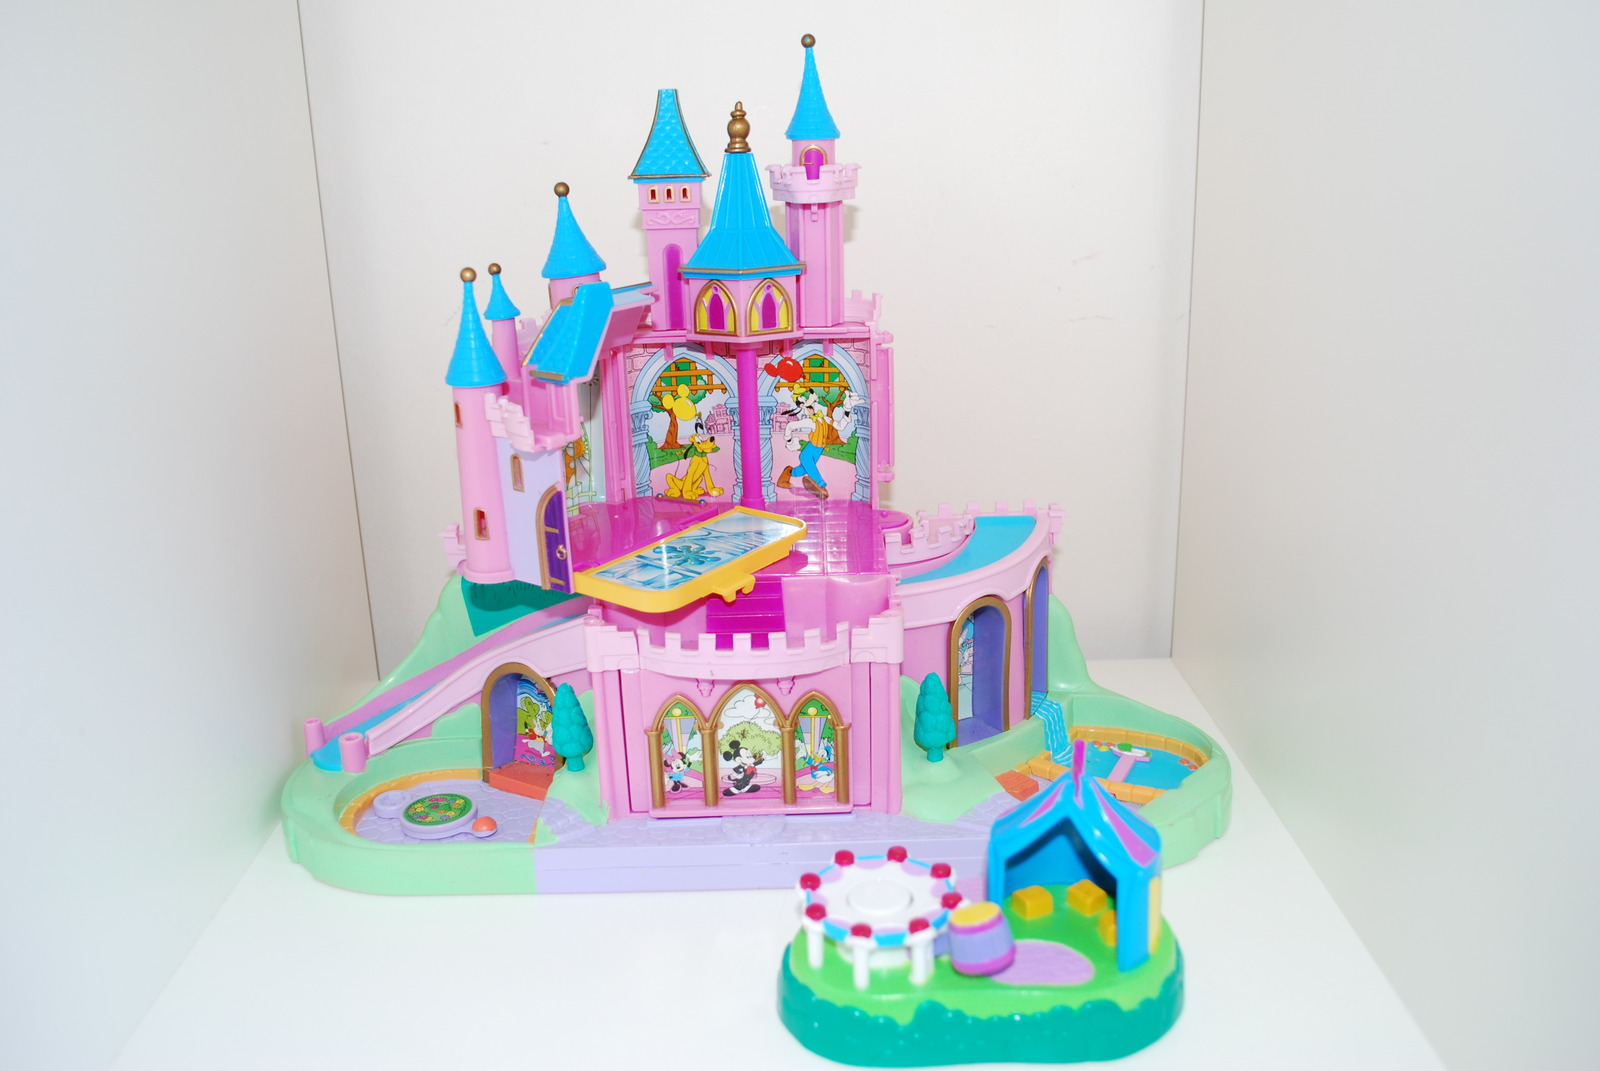 & Polly Pocket Magic Kingdom Disney Castle and 50 similar items